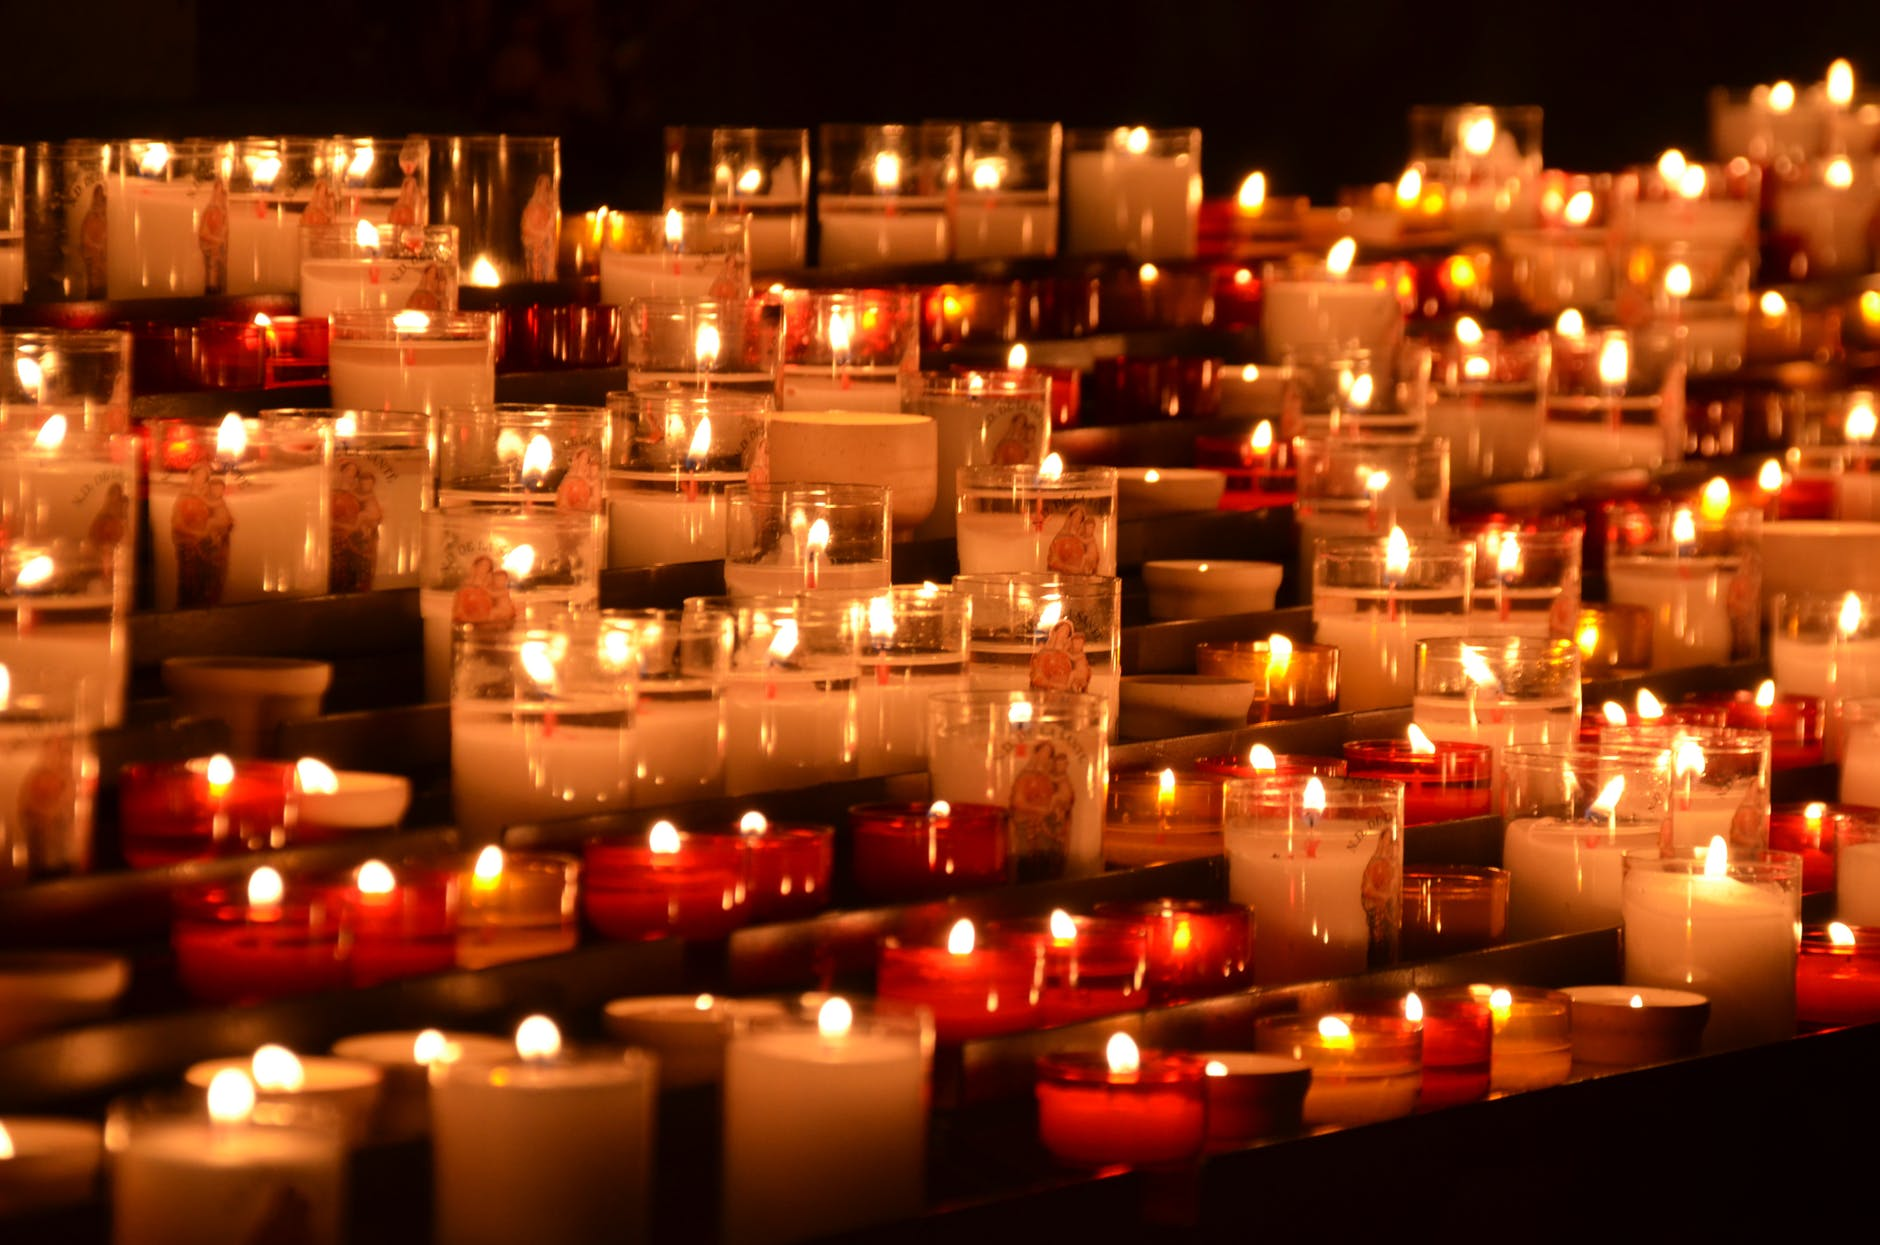 candlelight candles